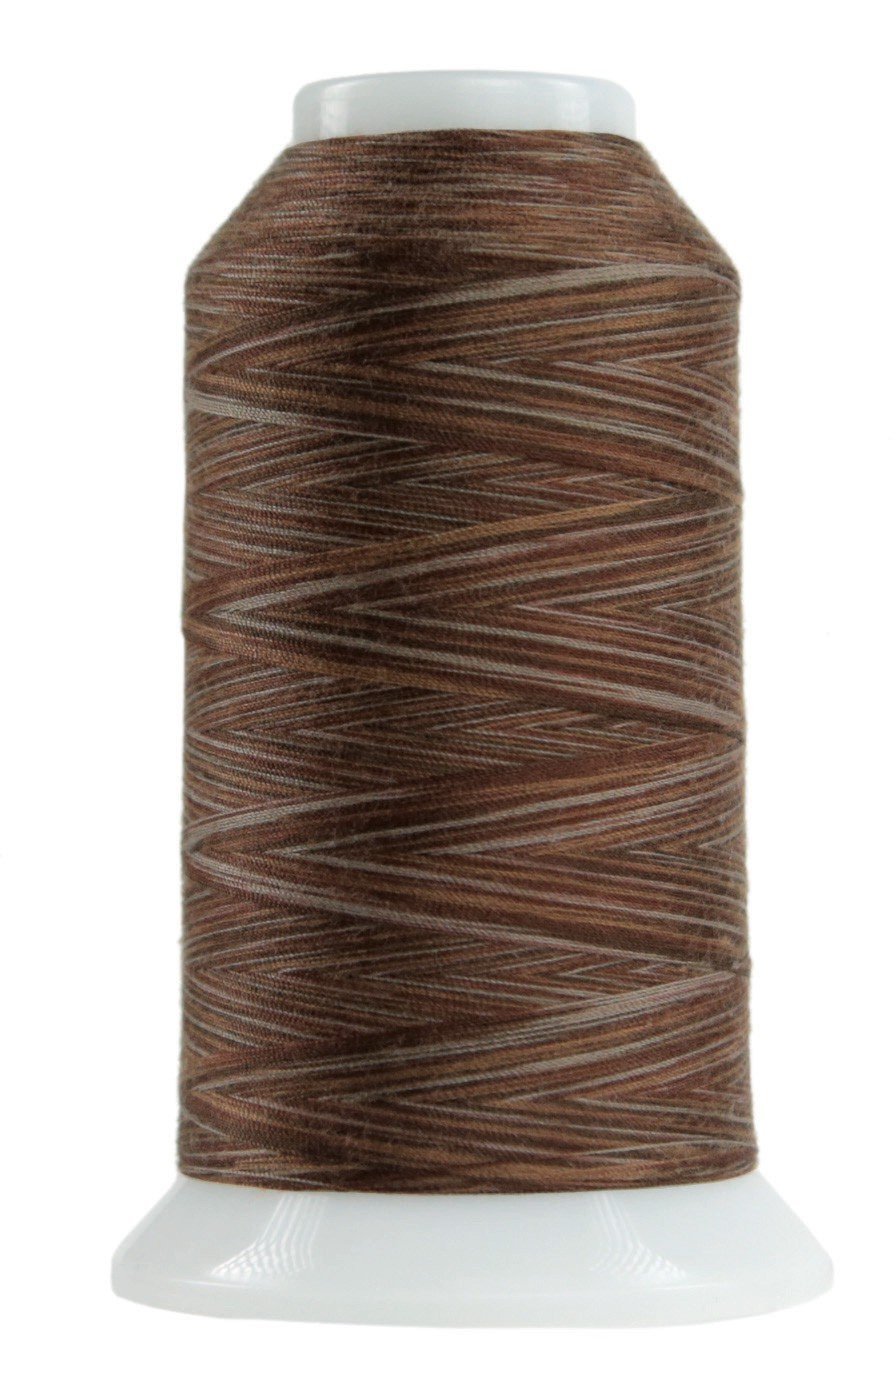 Omni Variegated Polyester Thread 40wt 2000yd Chocolate Pudding